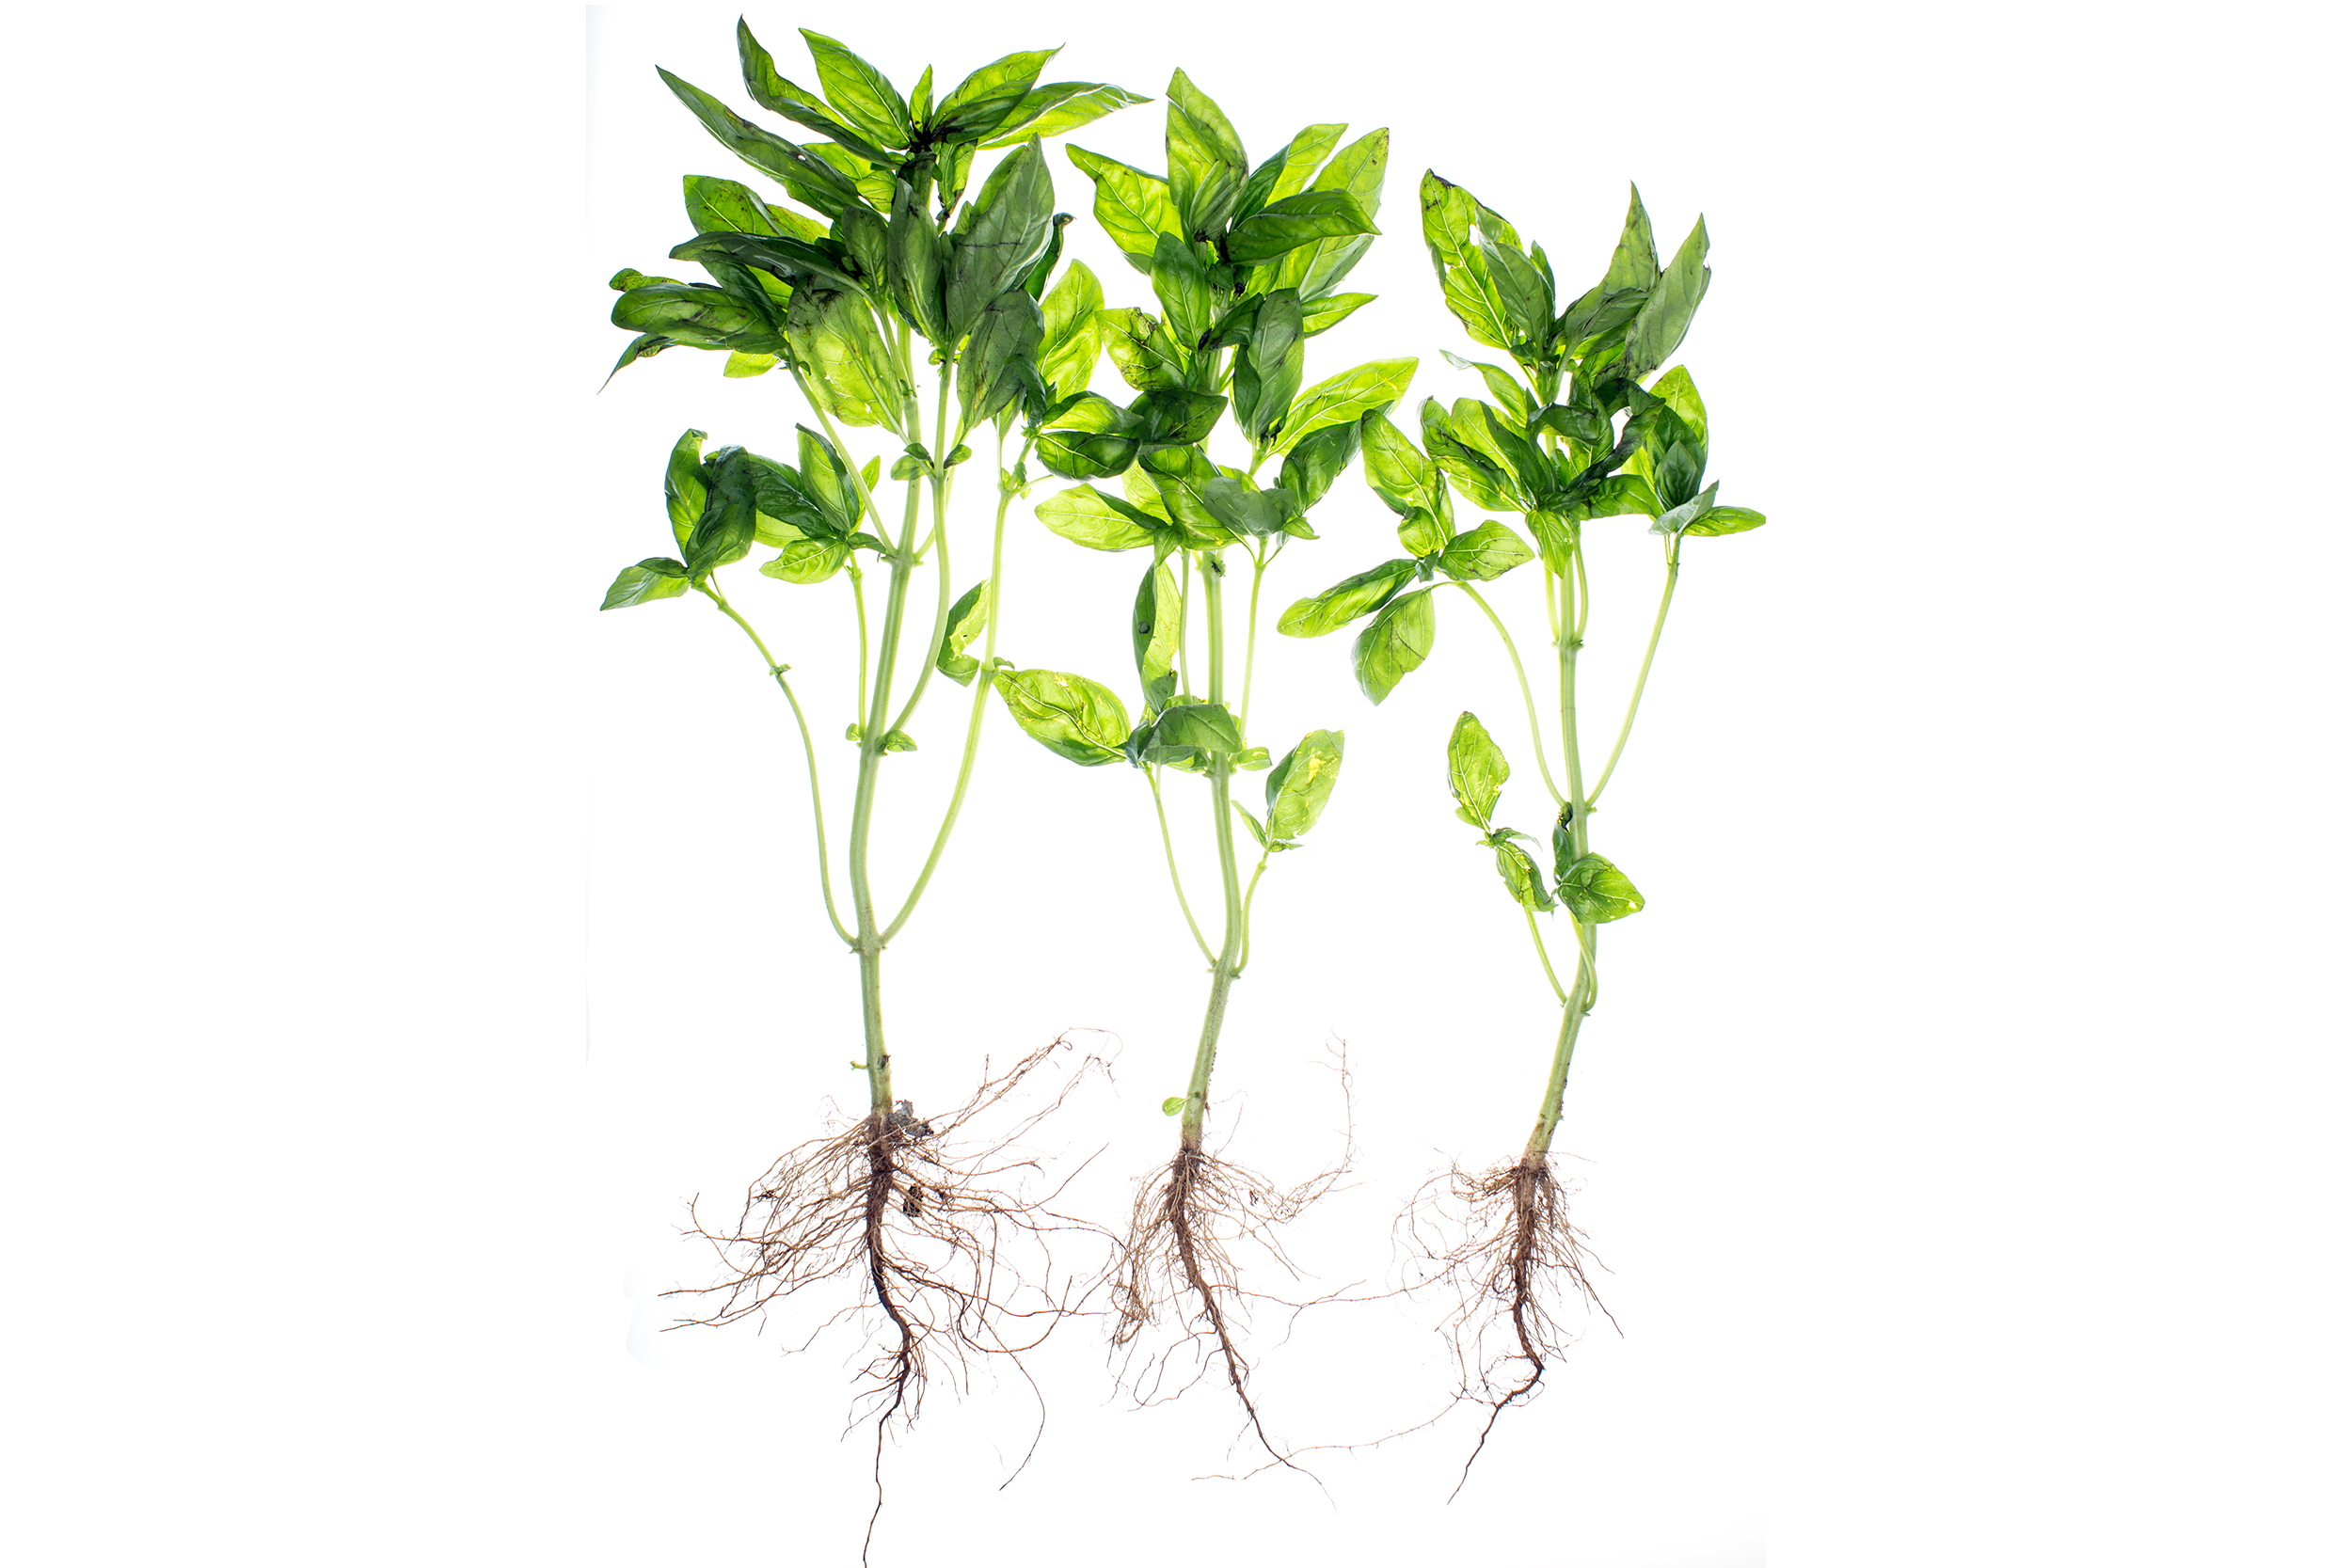 Translucent Basil with Roots